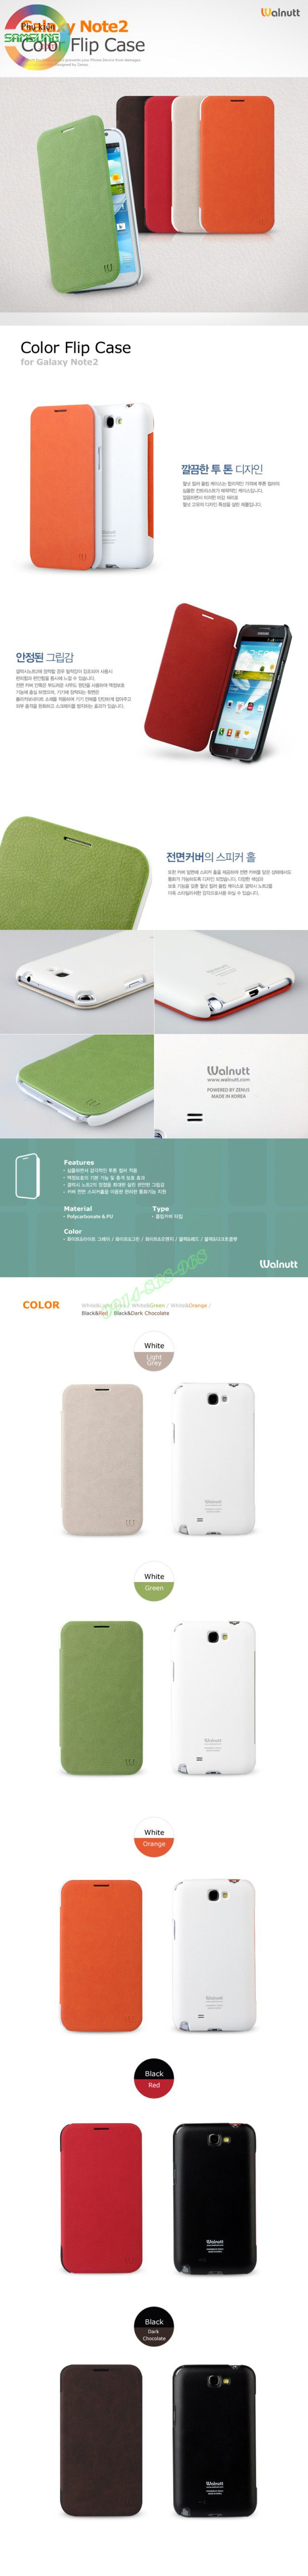 Bao da Galaxy Note 2 hiệu Walnutt Color Flip Collection